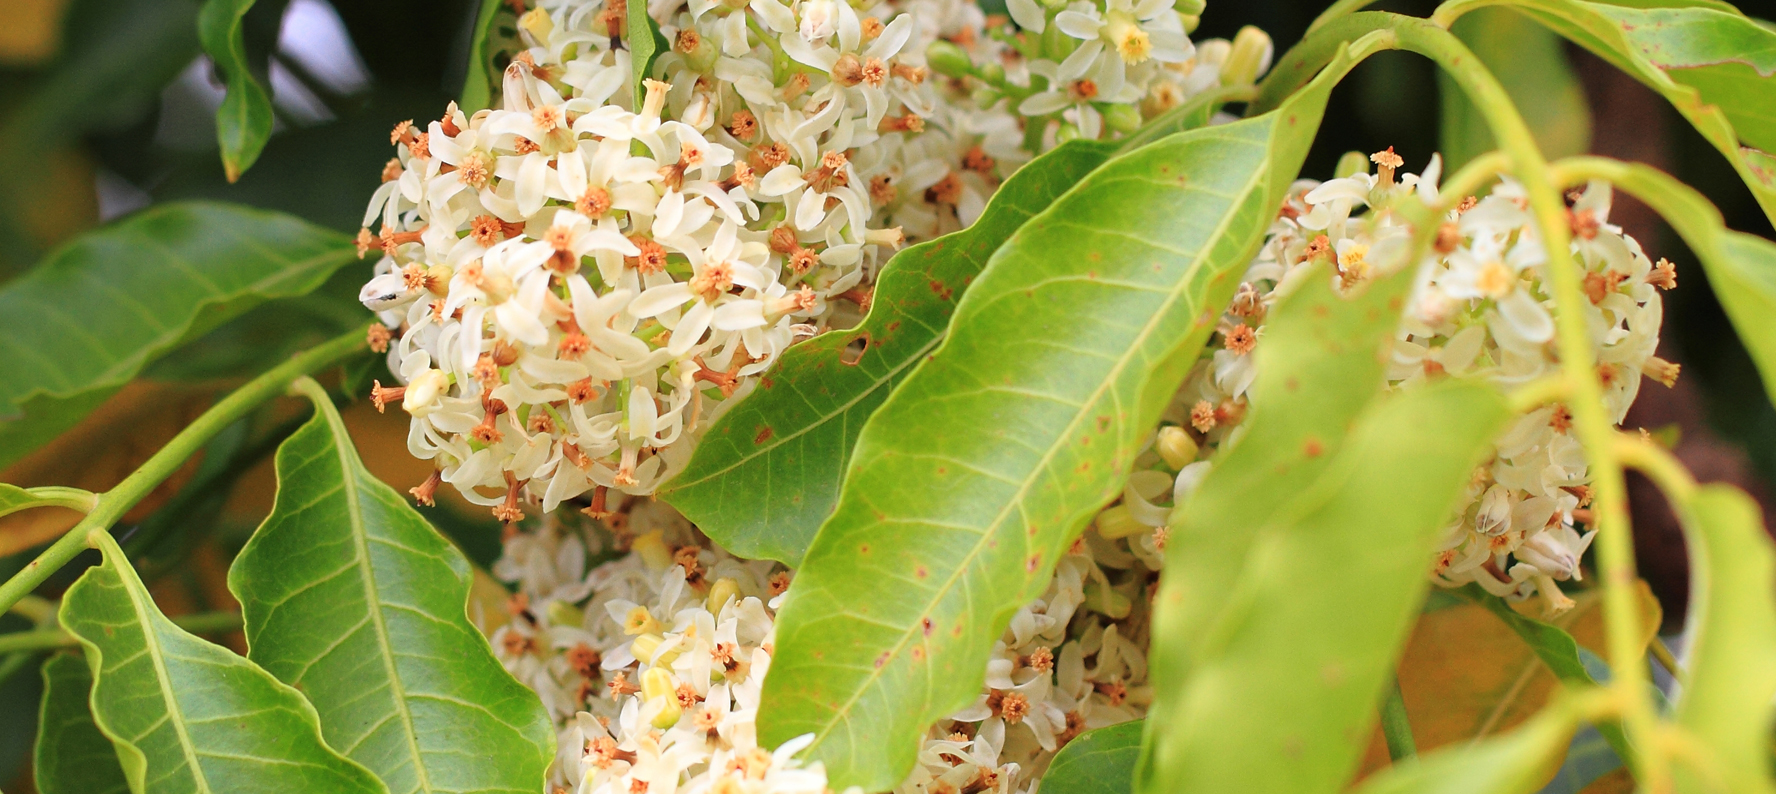 Azadirachta Indica Neem Oil is used in natrual skin care products for its anti-inflammatory, toxin removal and antimicrobial effects properties.